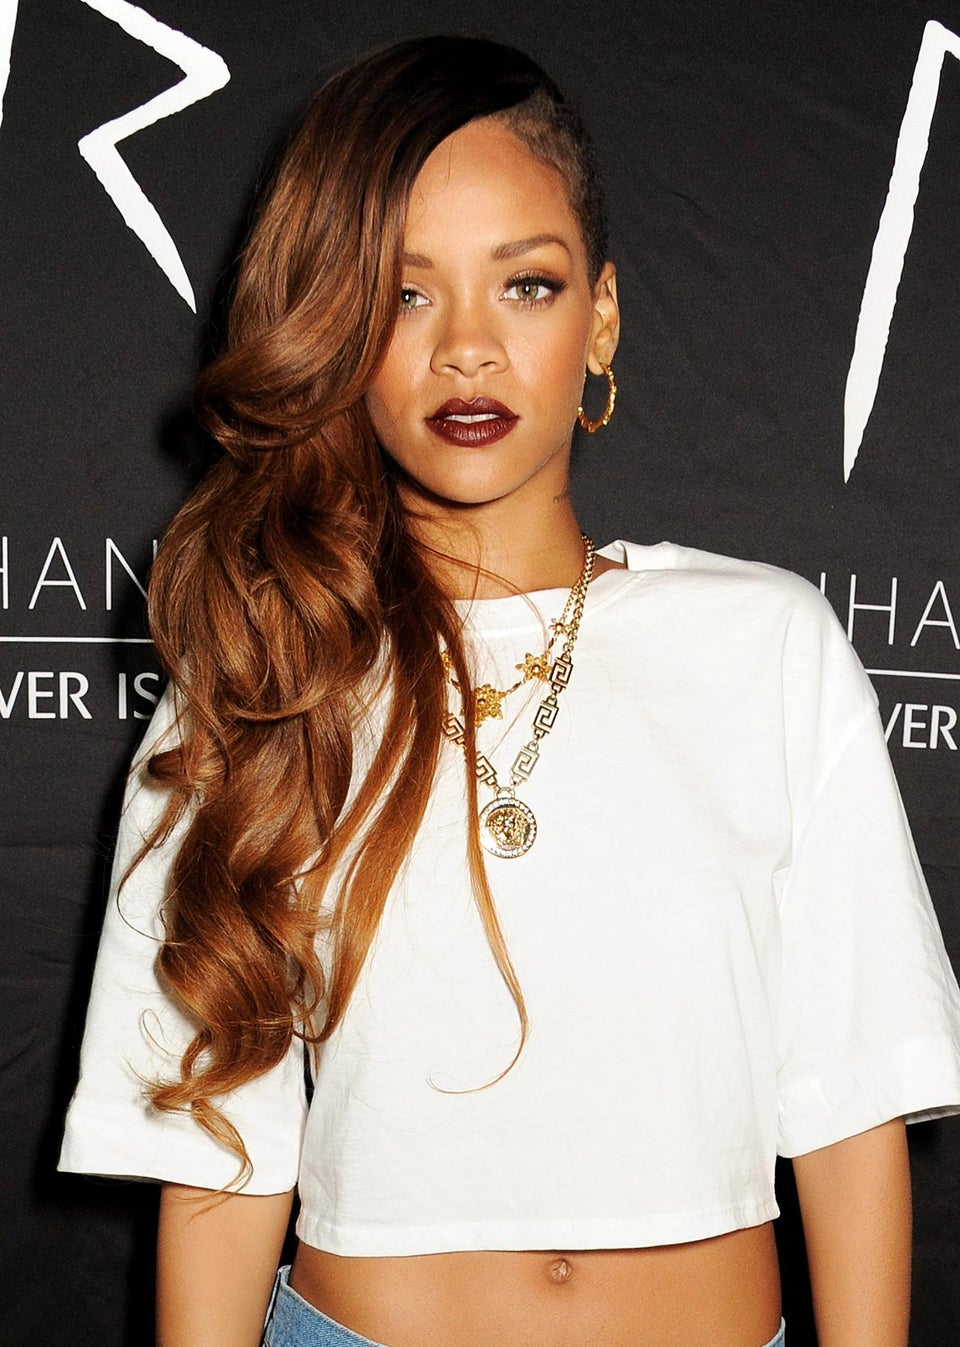 Rihanna's Mother Scolds Her Over Risqué Instagrams